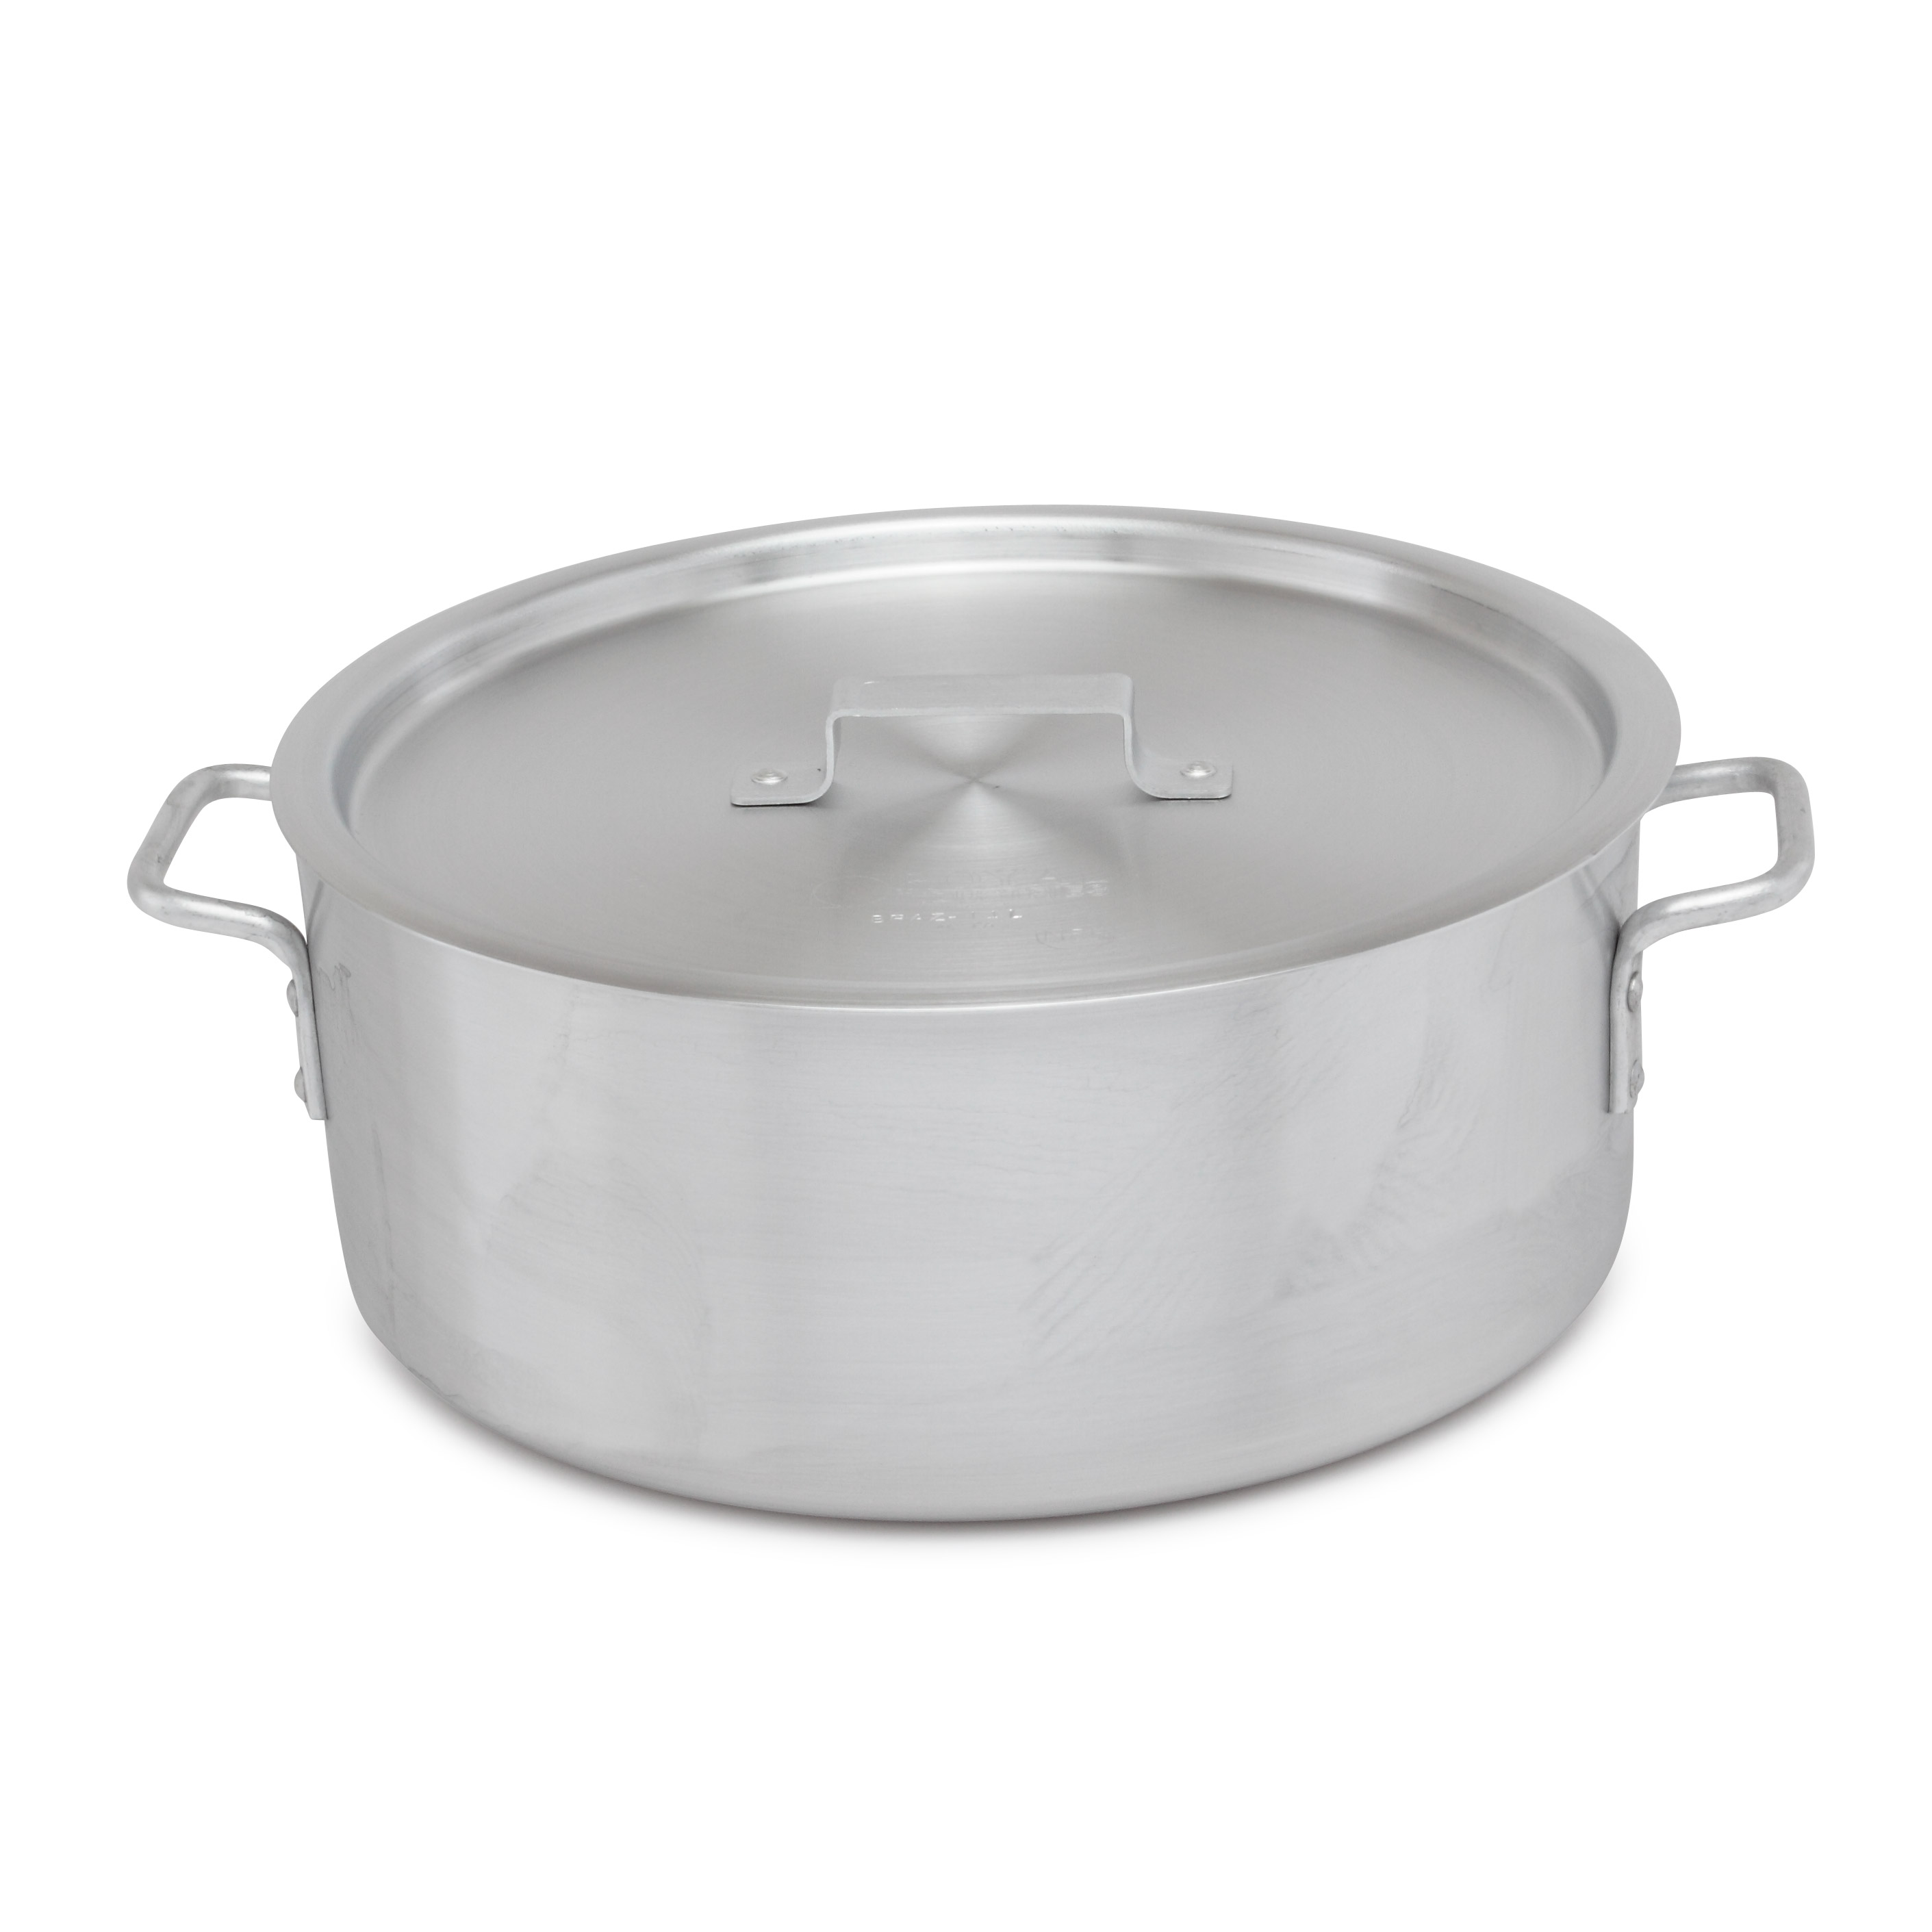 Royal Industries ROY BRAZ SW 14 brazier pan